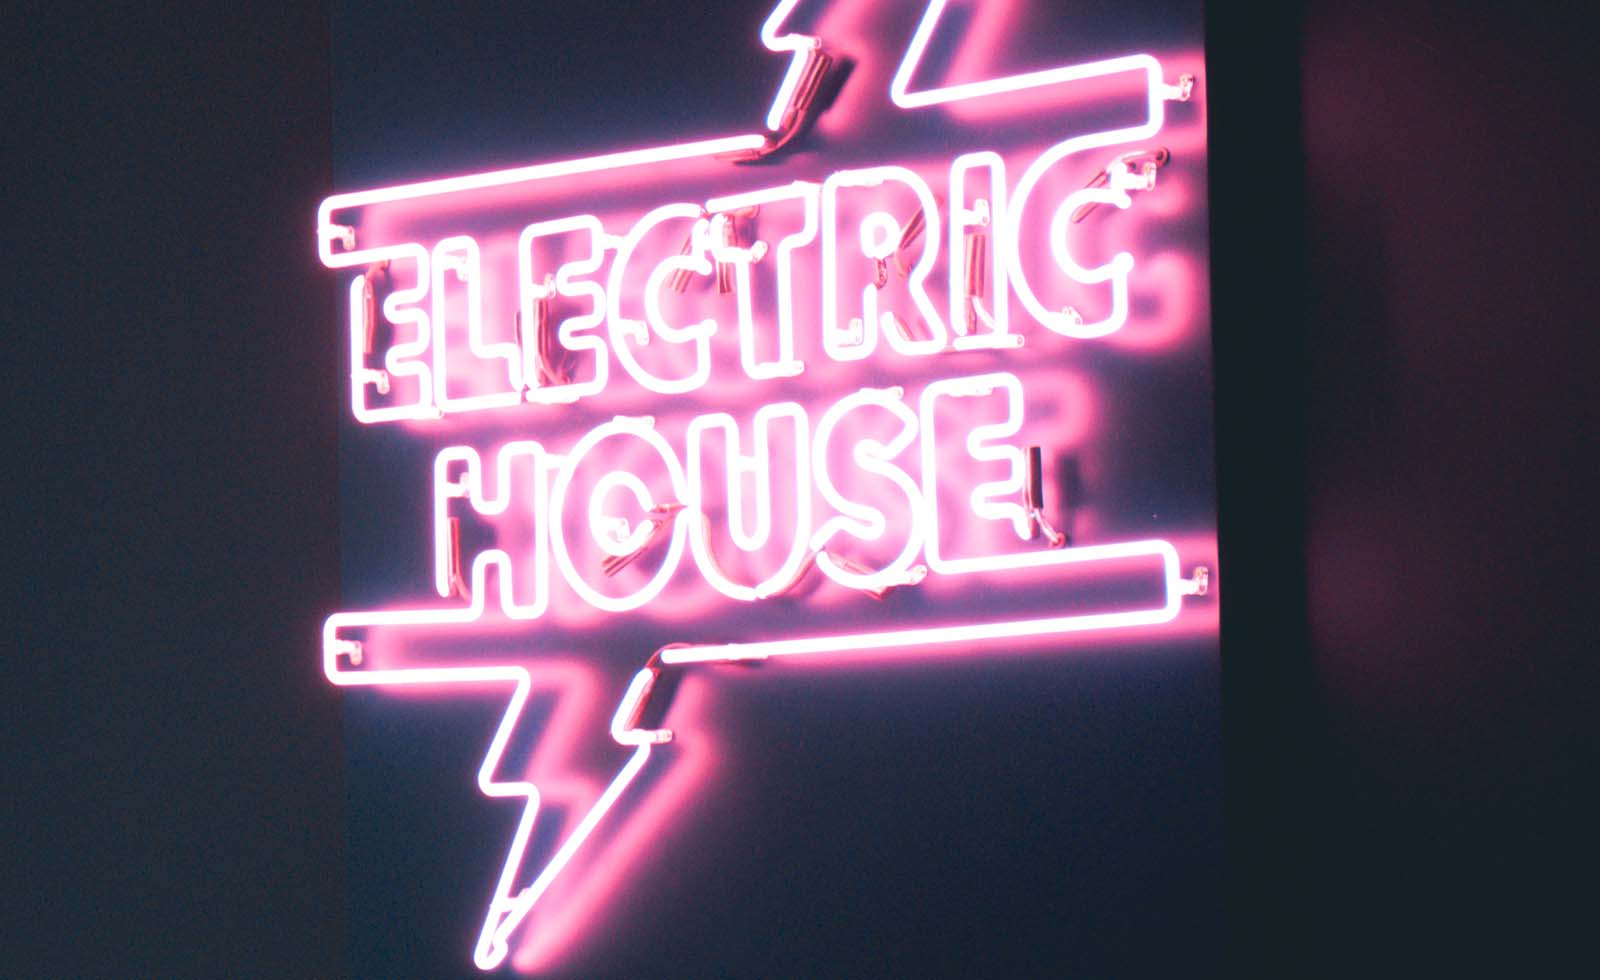 electric house article featured image